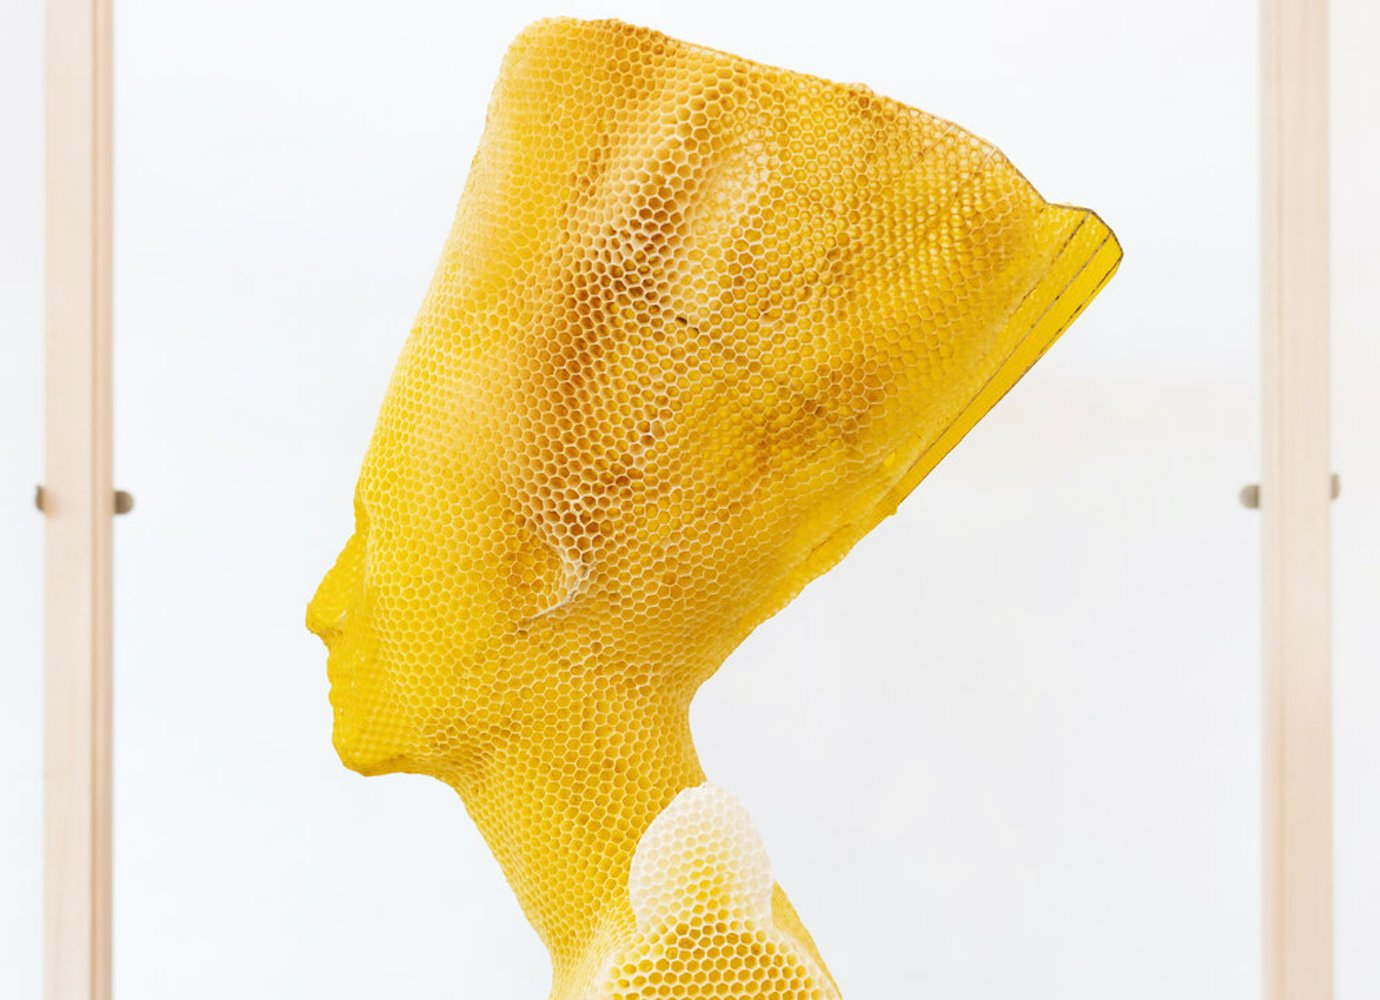 Made by bees: Slovak artist uses honeybees to sculpt a wax bust of Nefertiti